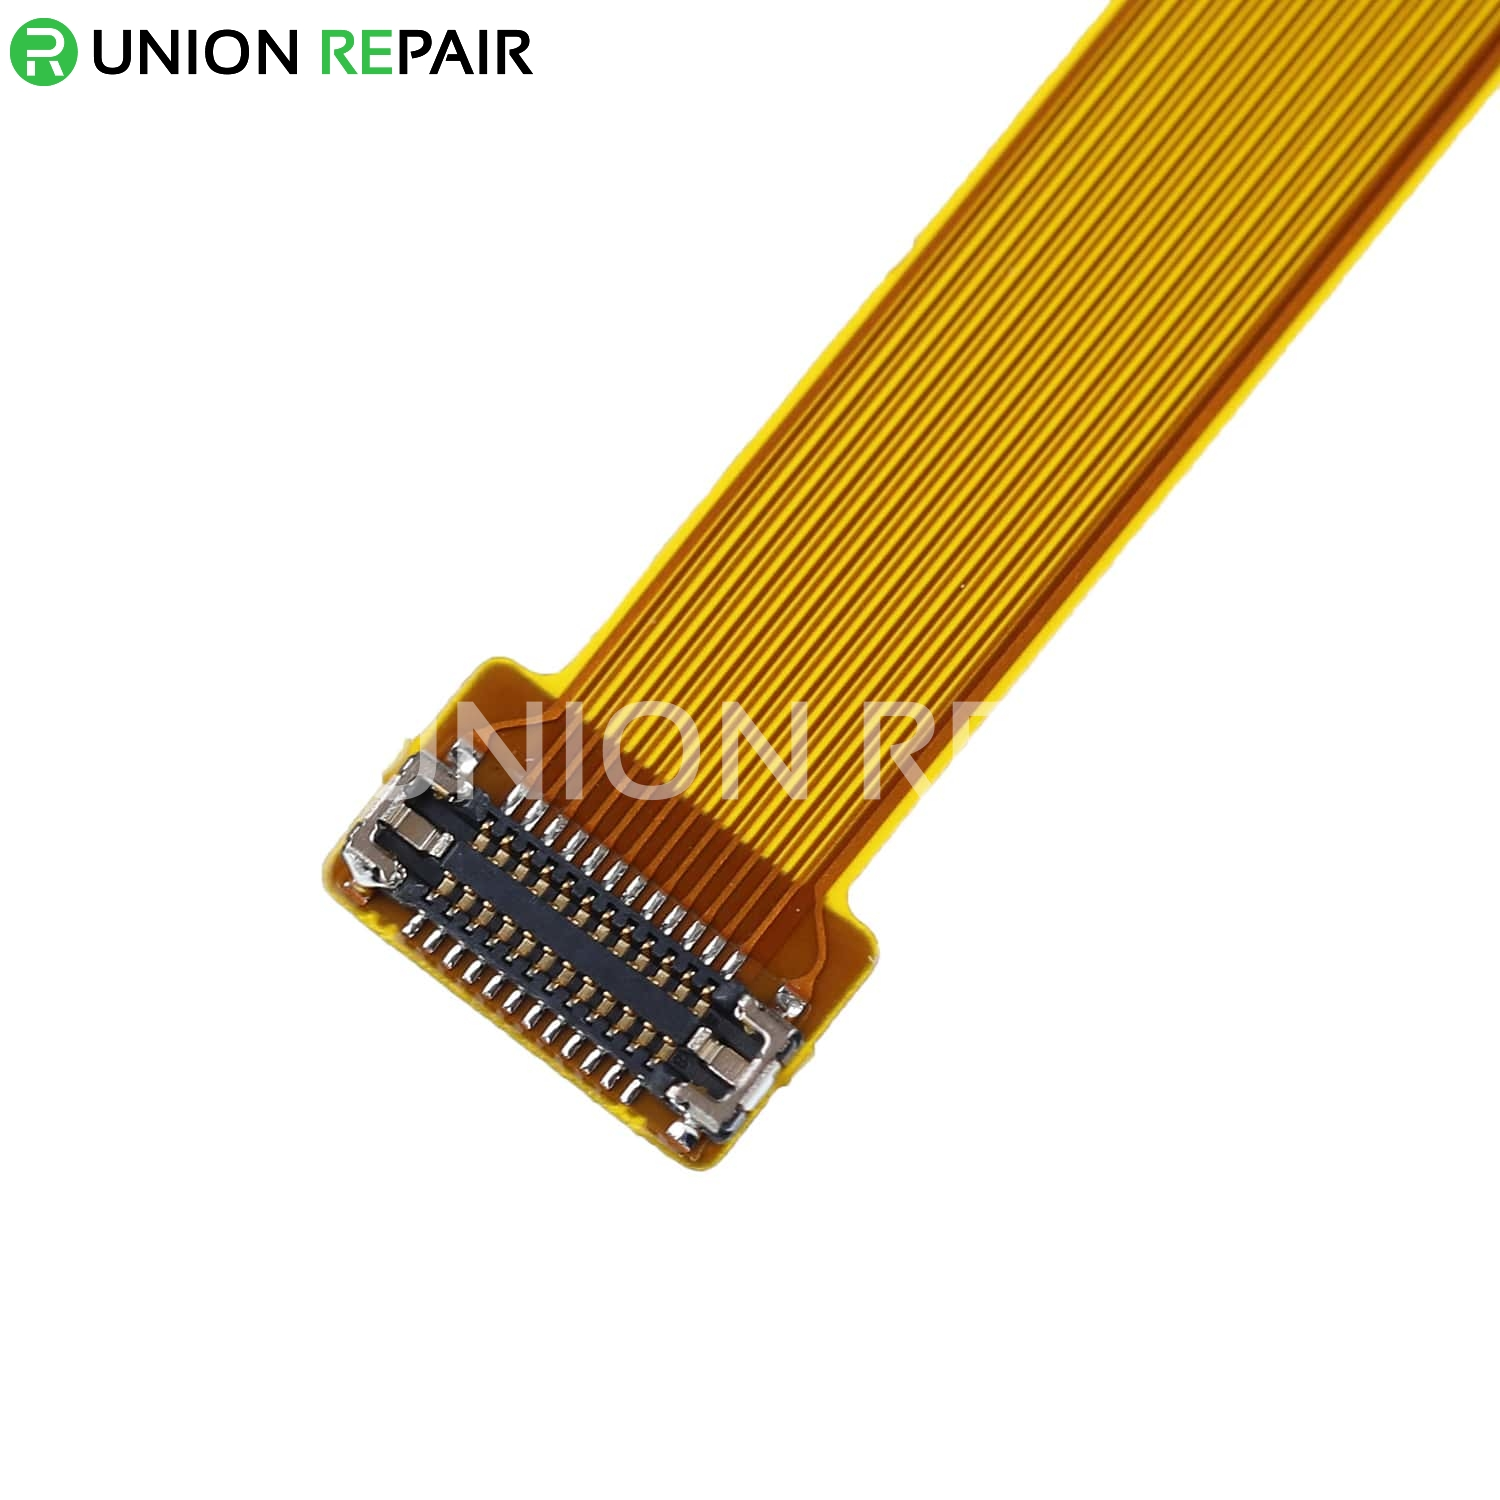 Rear Camera PCB Connector Extended Flex Cable Ribbon for iPhone 8/8 Plus (2pcs/set)